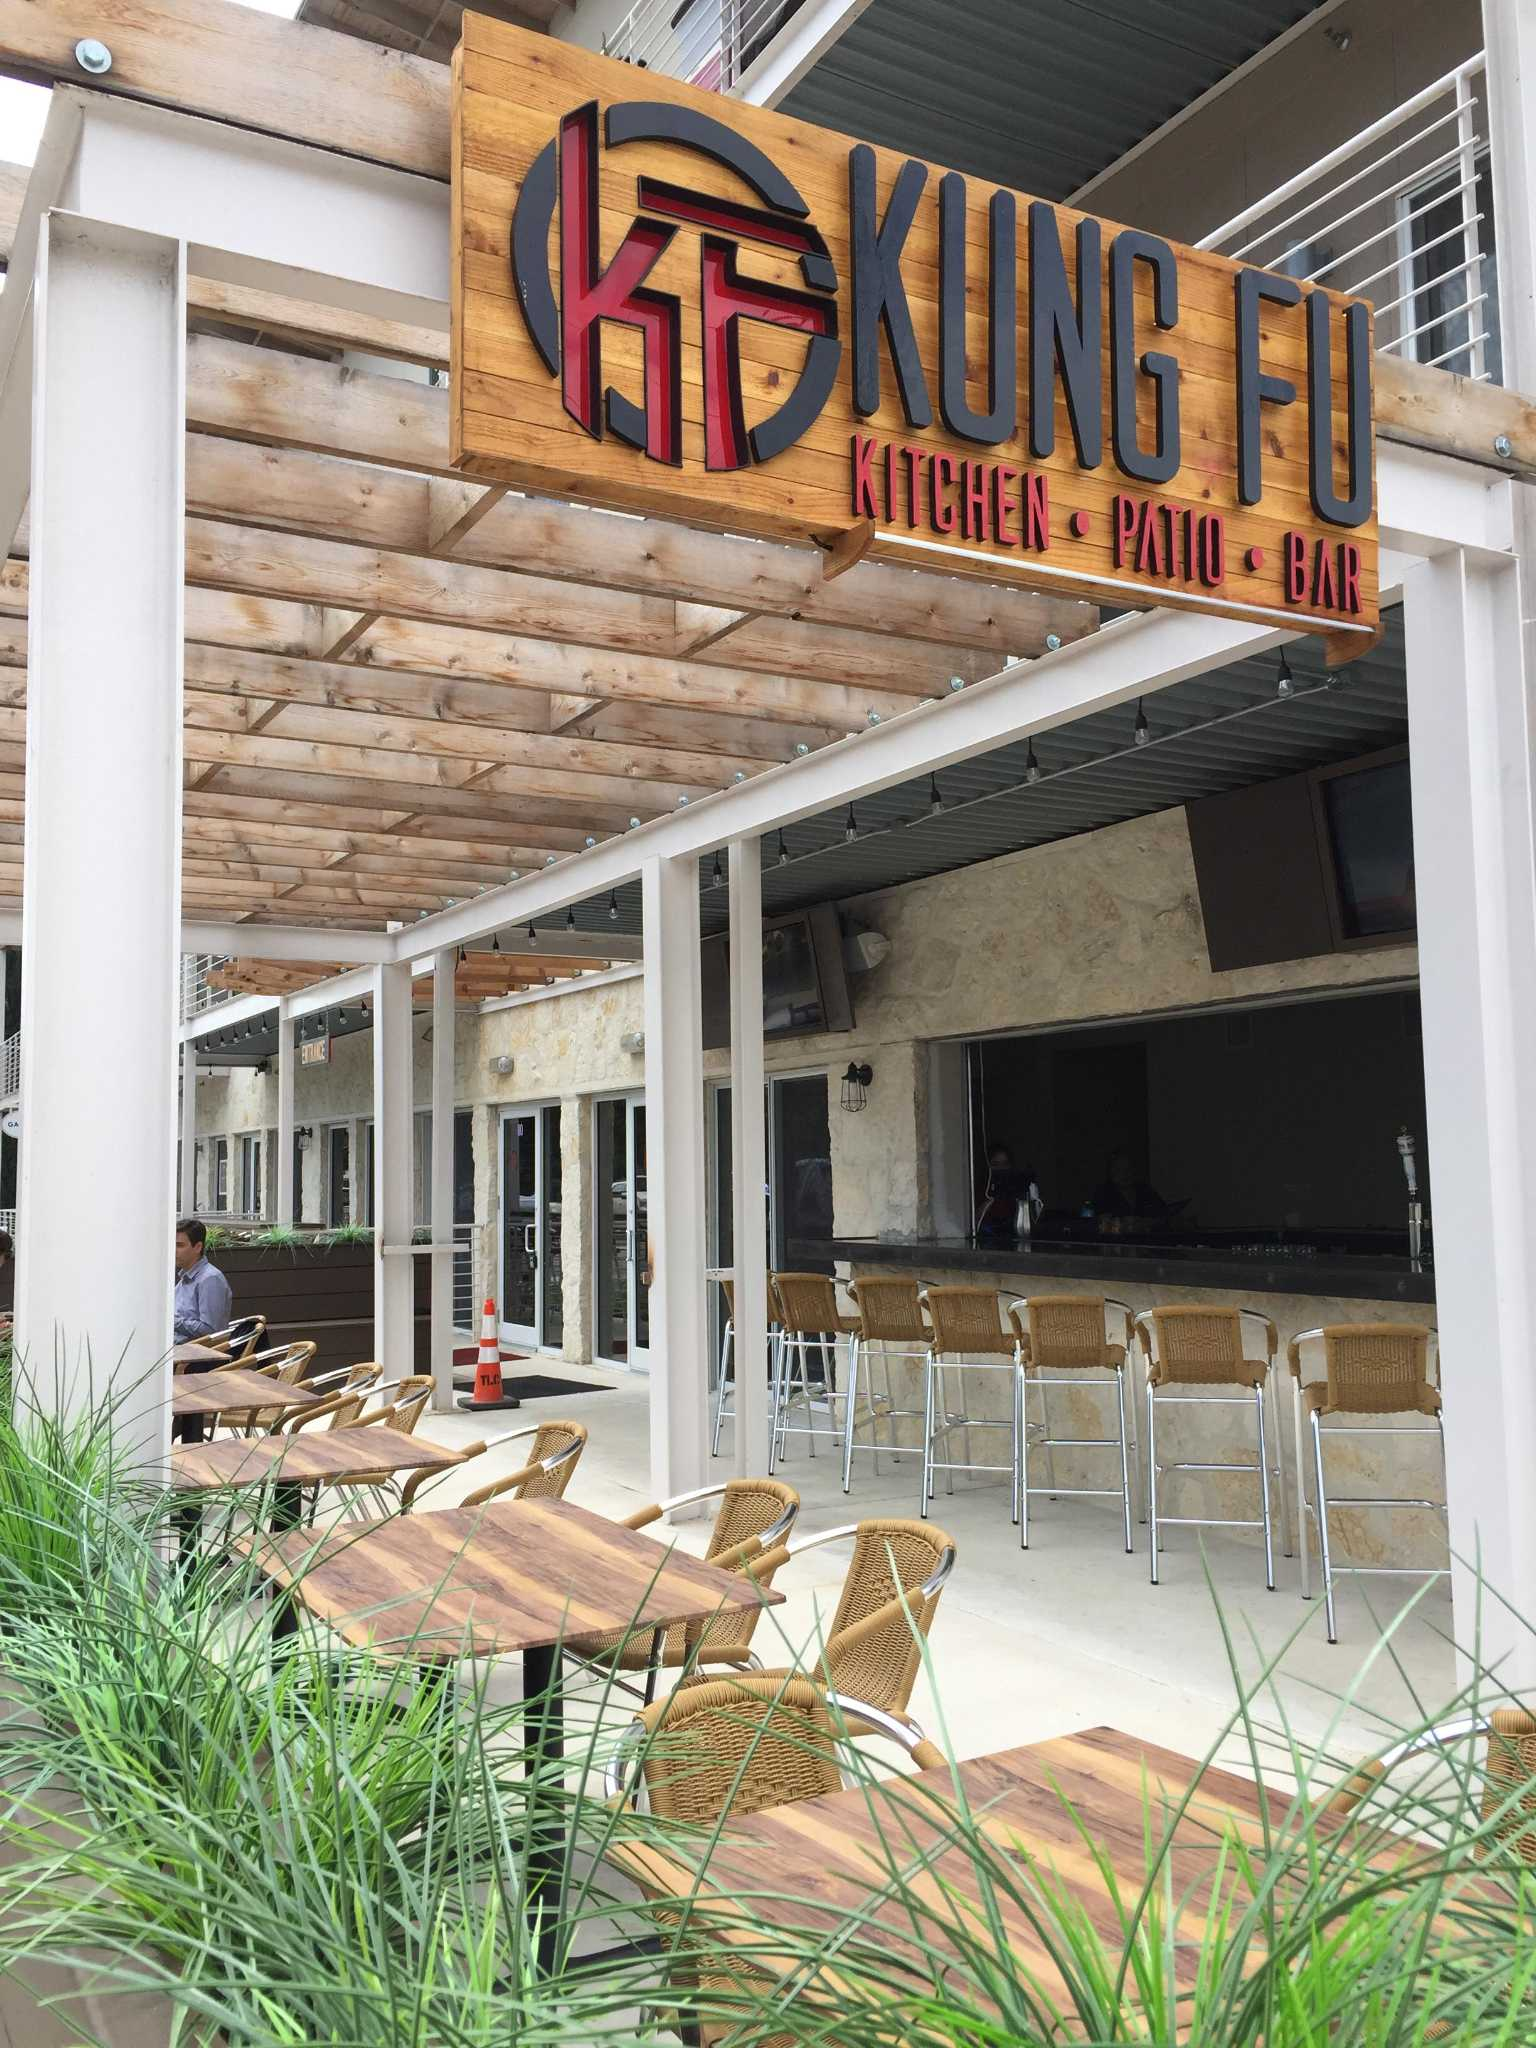 southtown s kung fu kitchen patio bar moves to catering only rh chron com patio kitchen and bar Patio Kitchens Designs